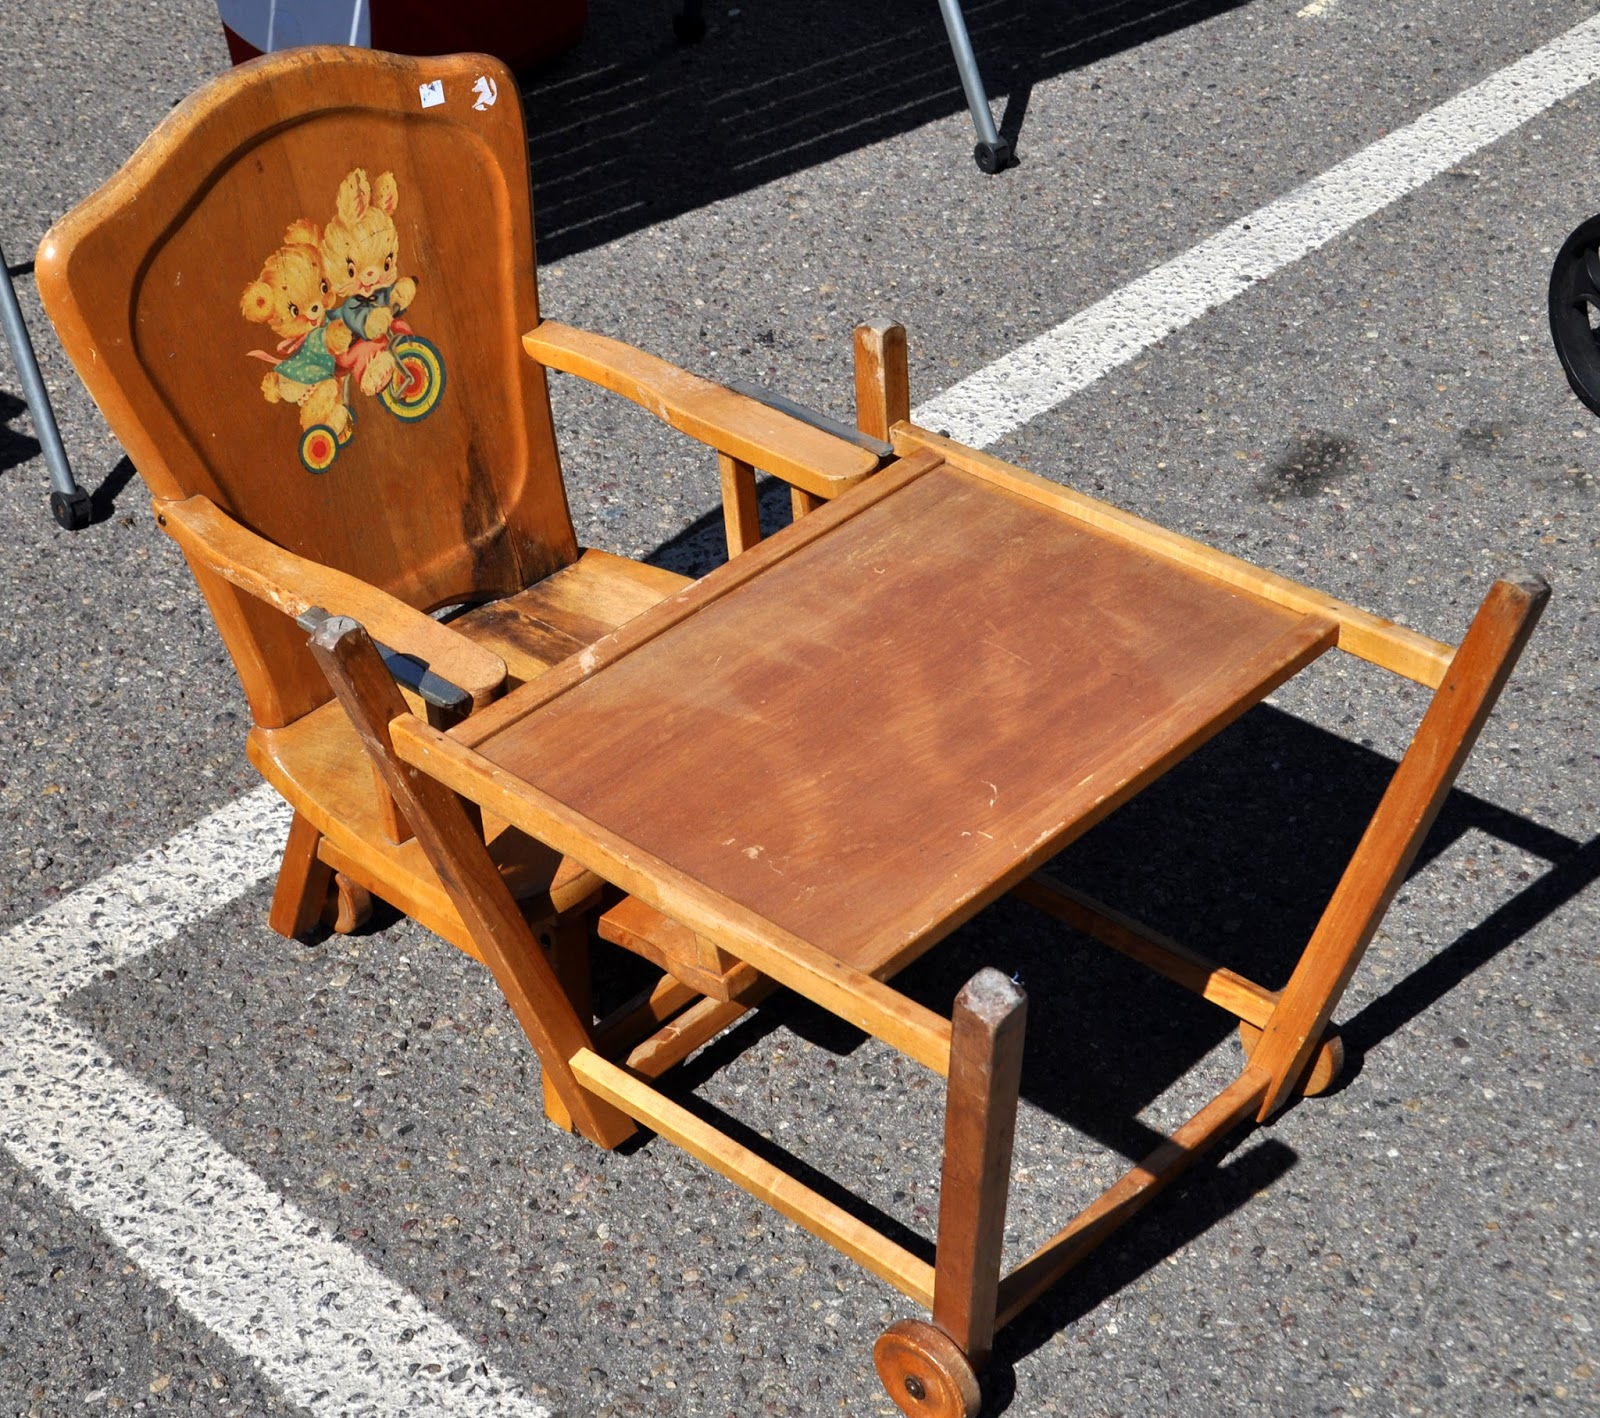 High Chair With Wheels Blue Outdoor Cushions Just A Car Guy I Know It 39s Odd But This Has